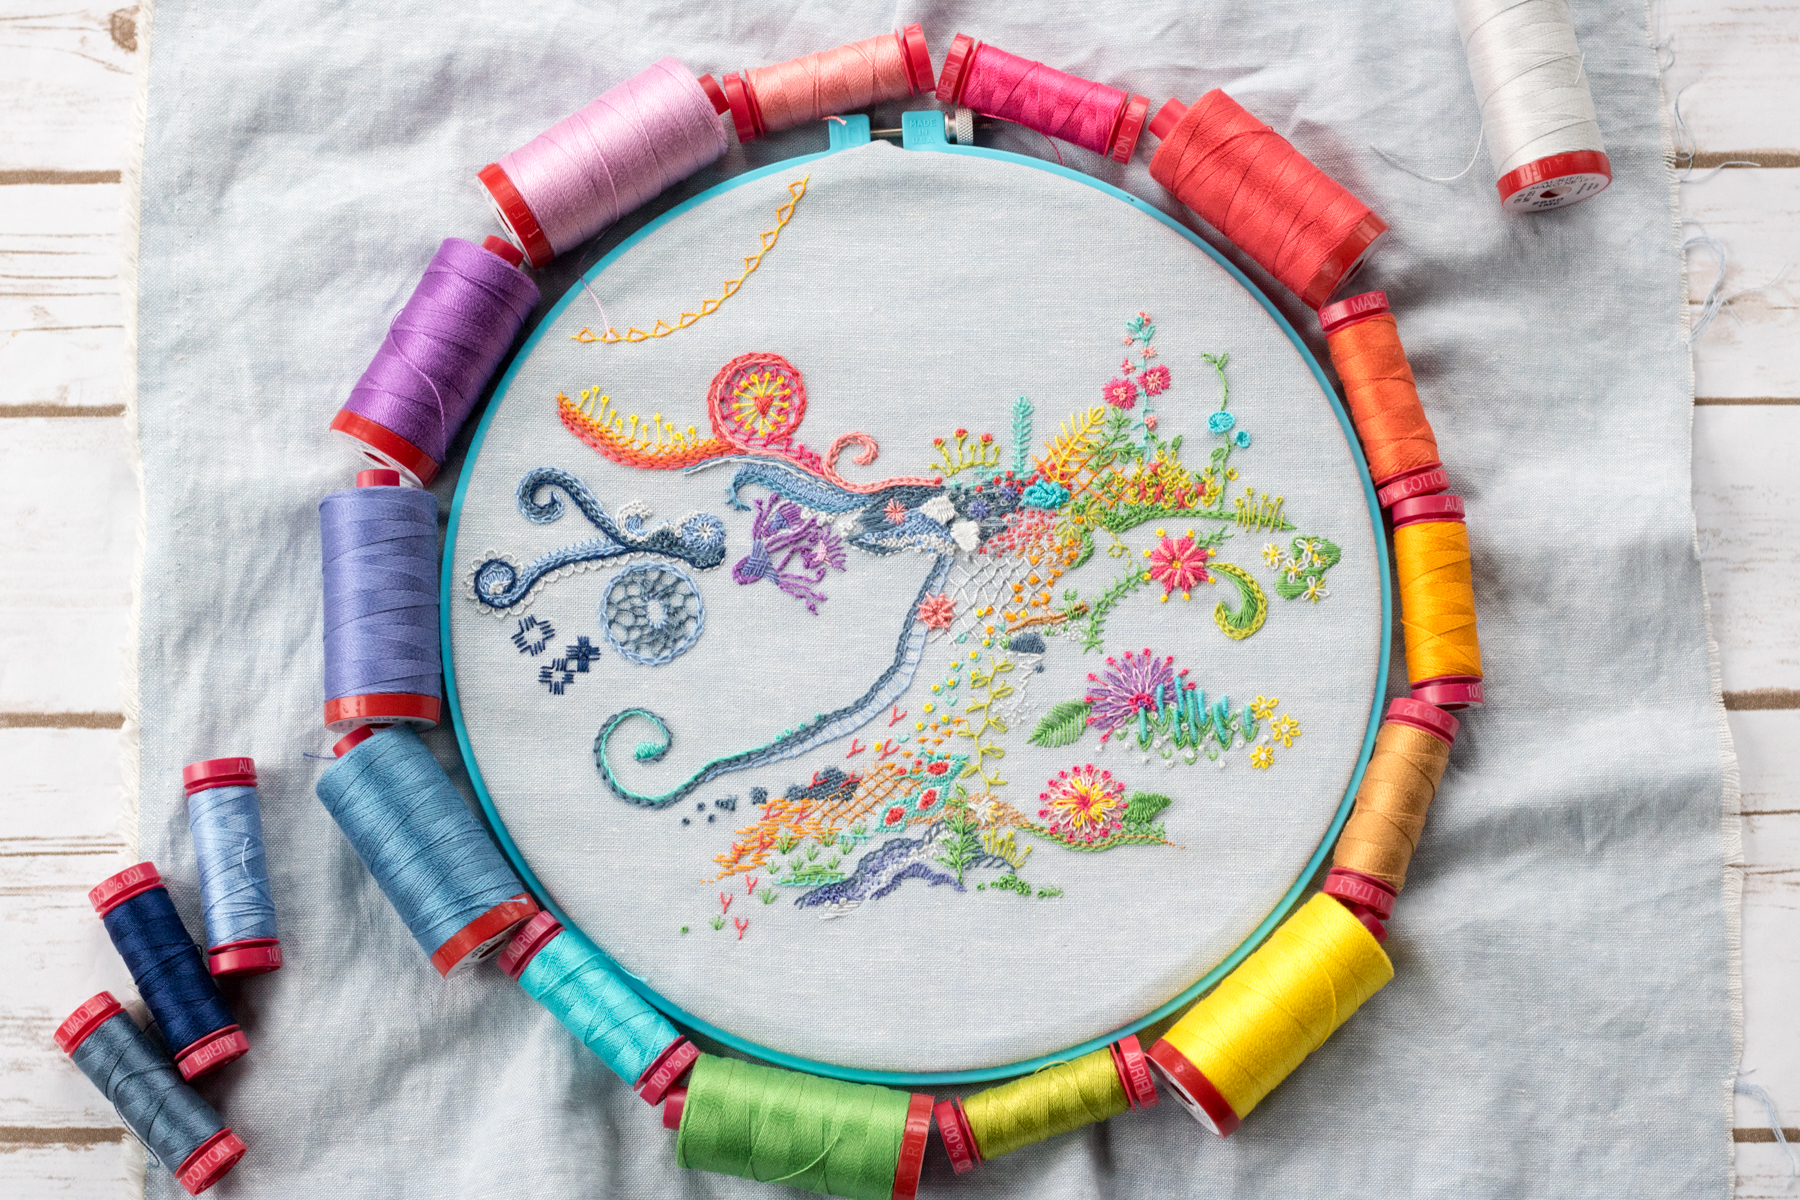 april 1 year of stitches embroidery freestyle aurifil thread